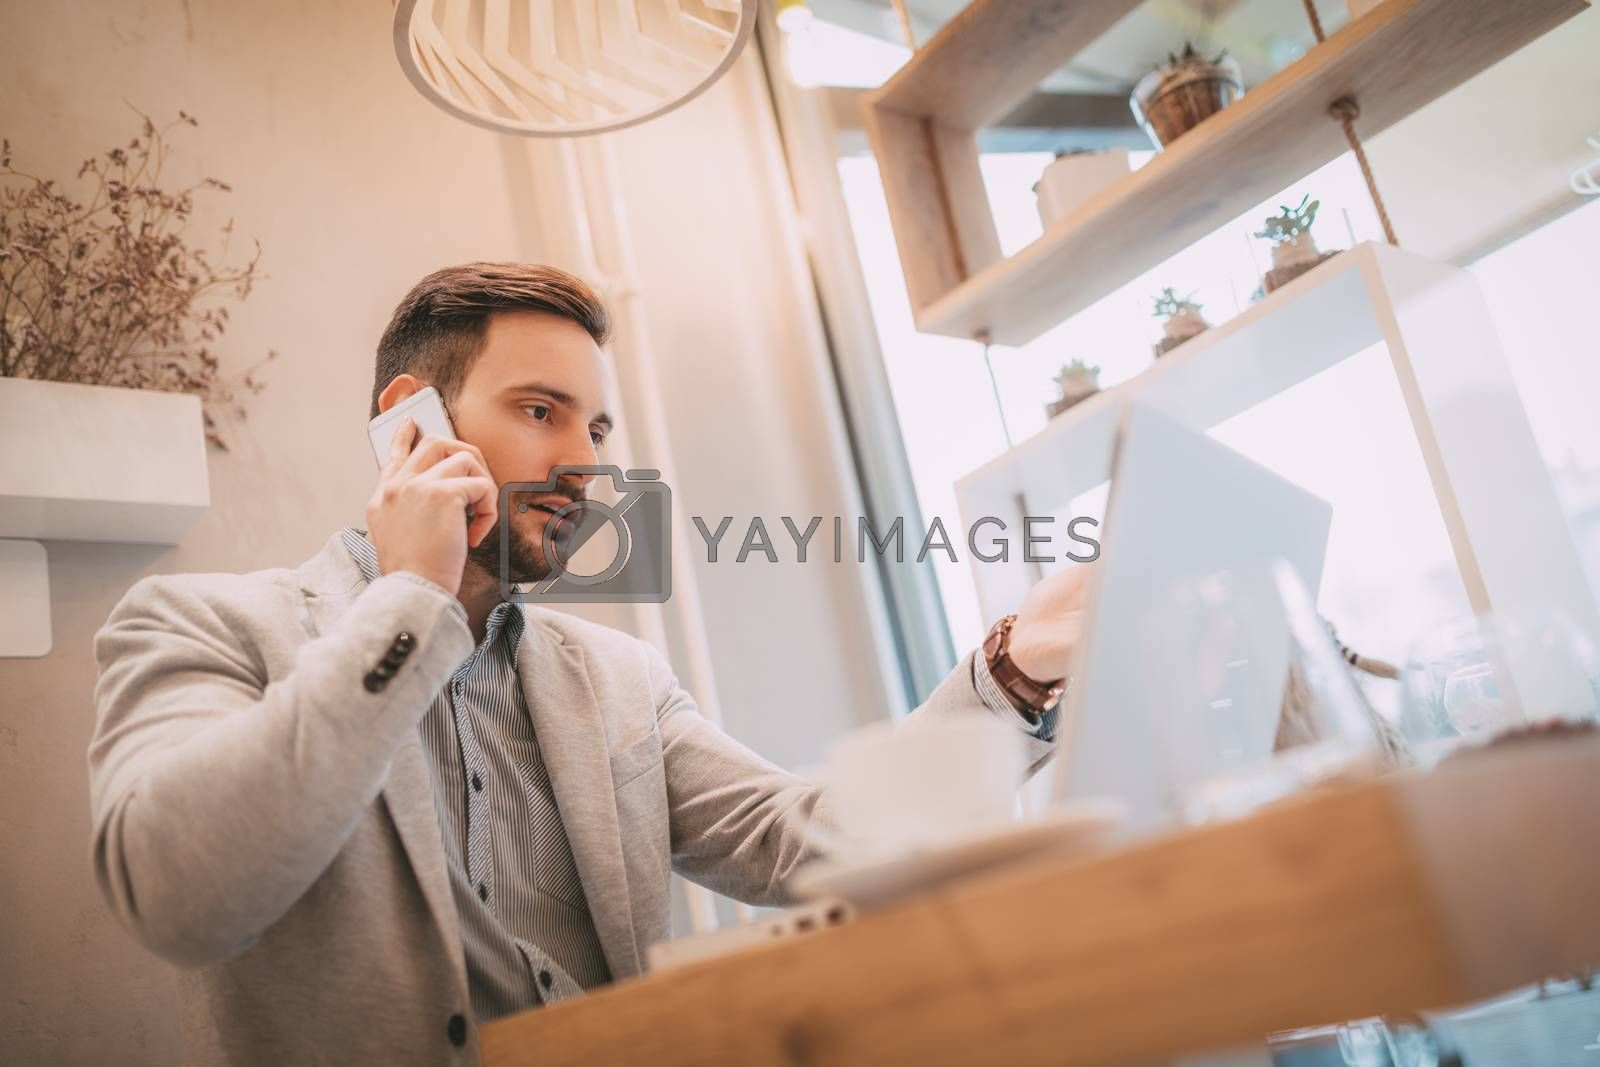 Young businessman on a break in a cafe. He is working at tablet and using smart phone.